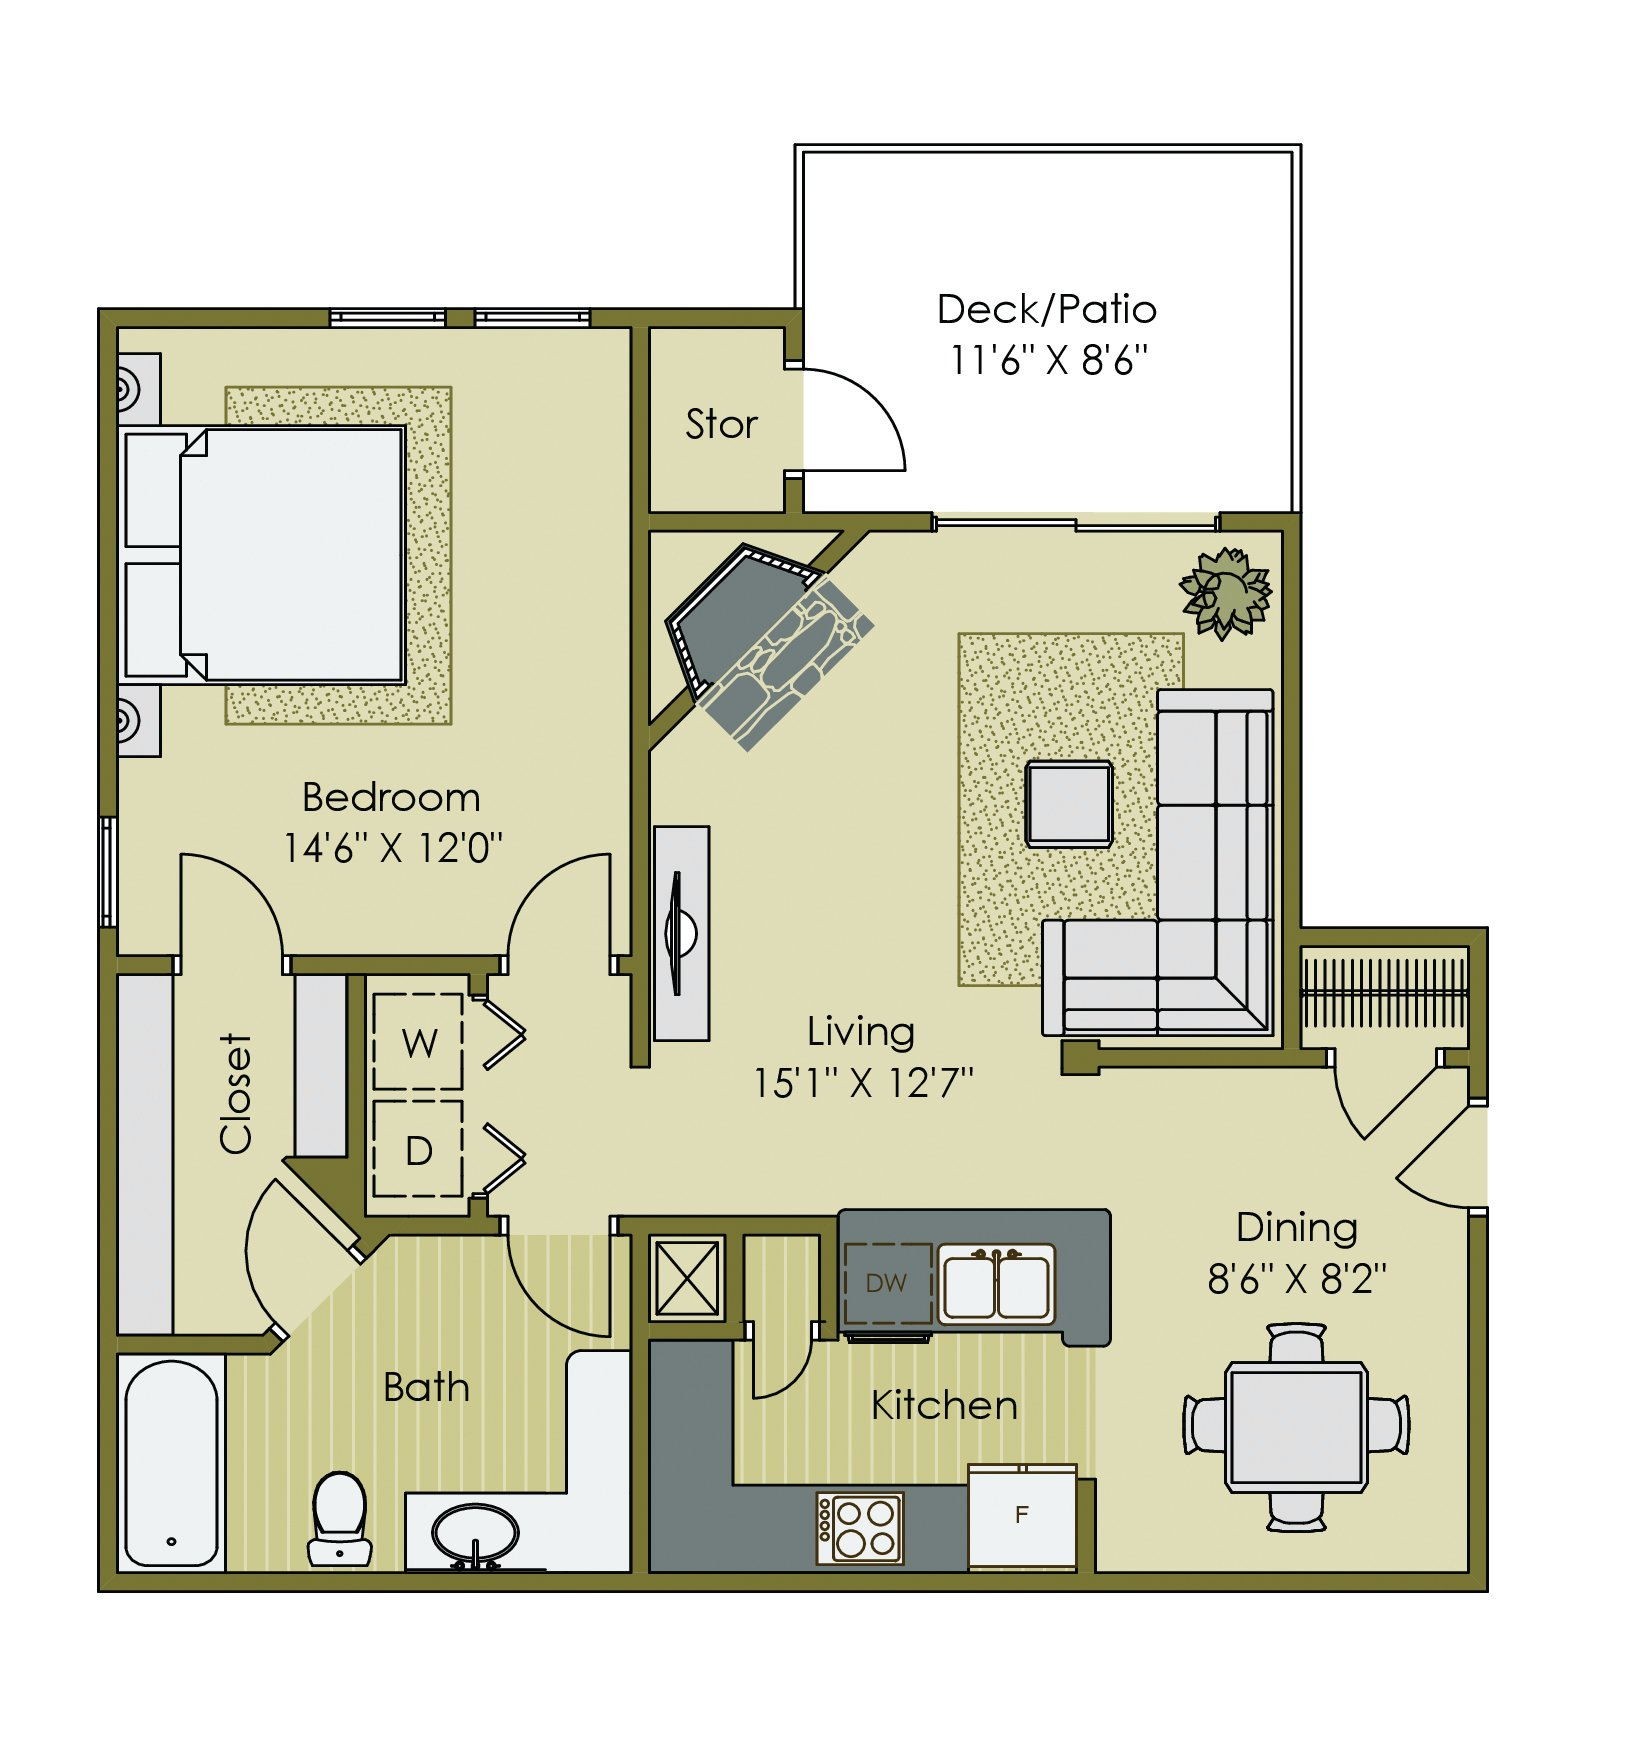 1 Bedroom Apartments Greenville Sc 1 19 Updated Today